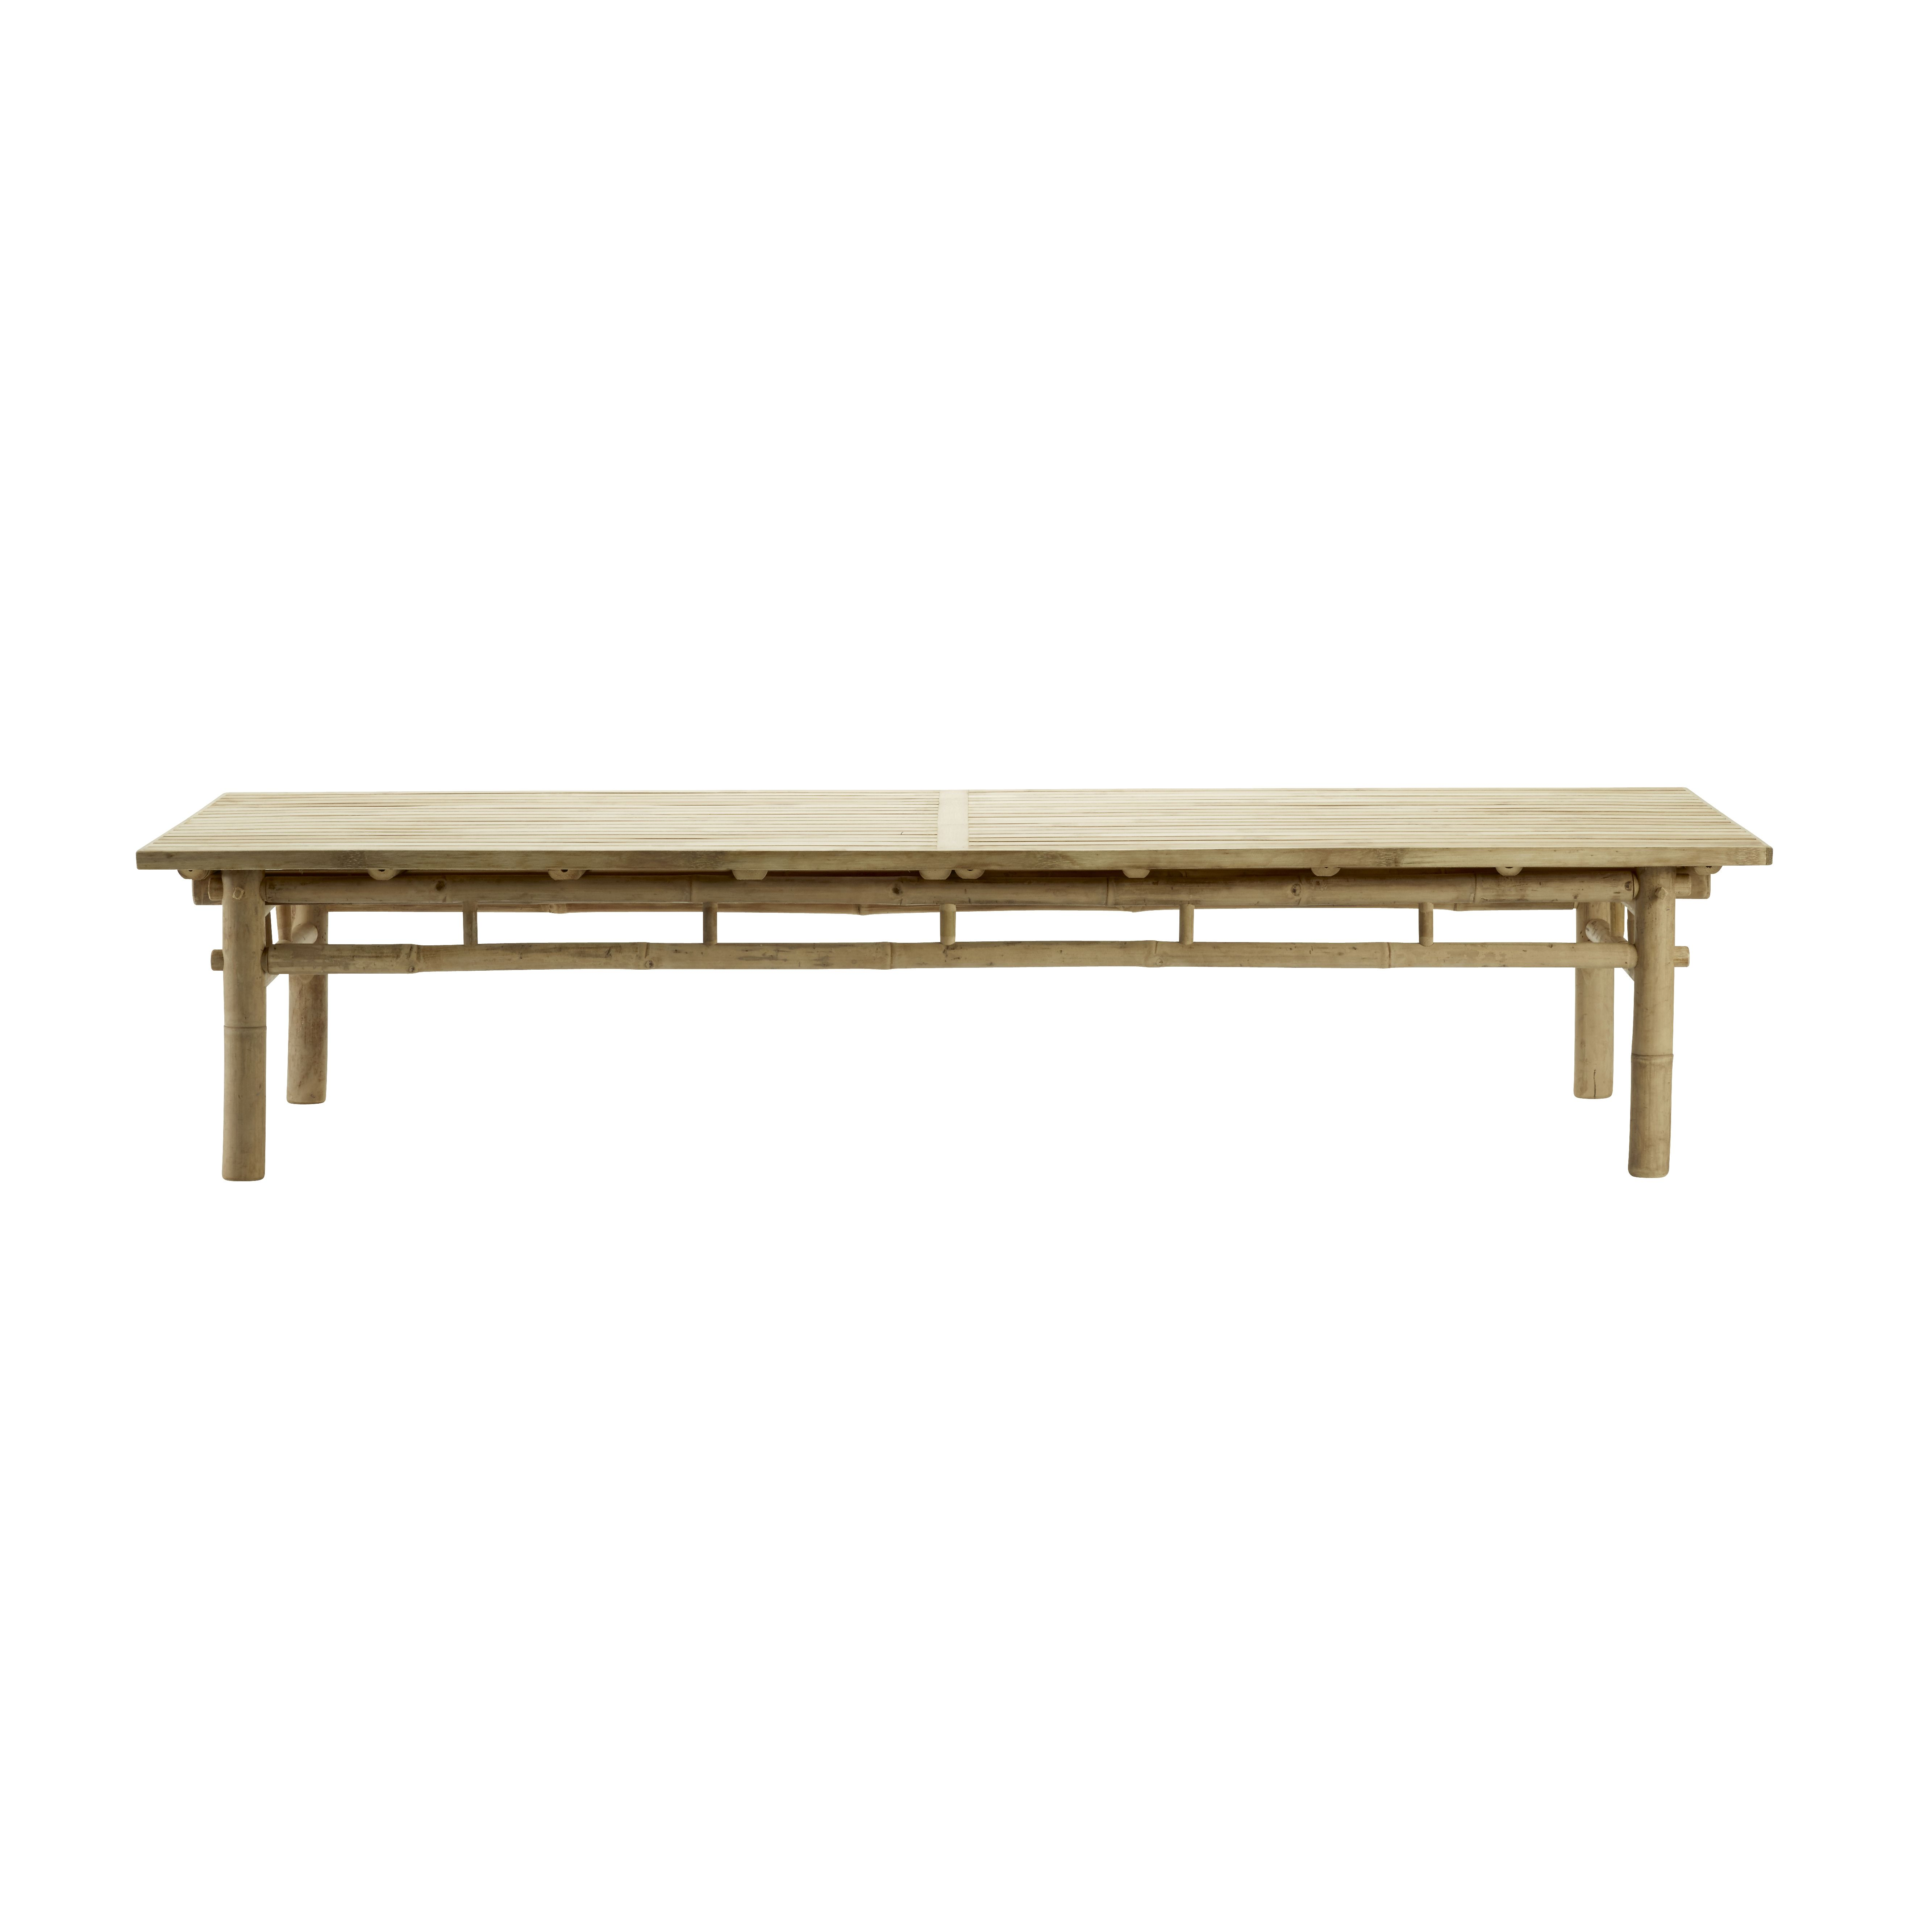 Bamboo Table 170 X 70 Cm Natural Bamboo Table Nordic Interior